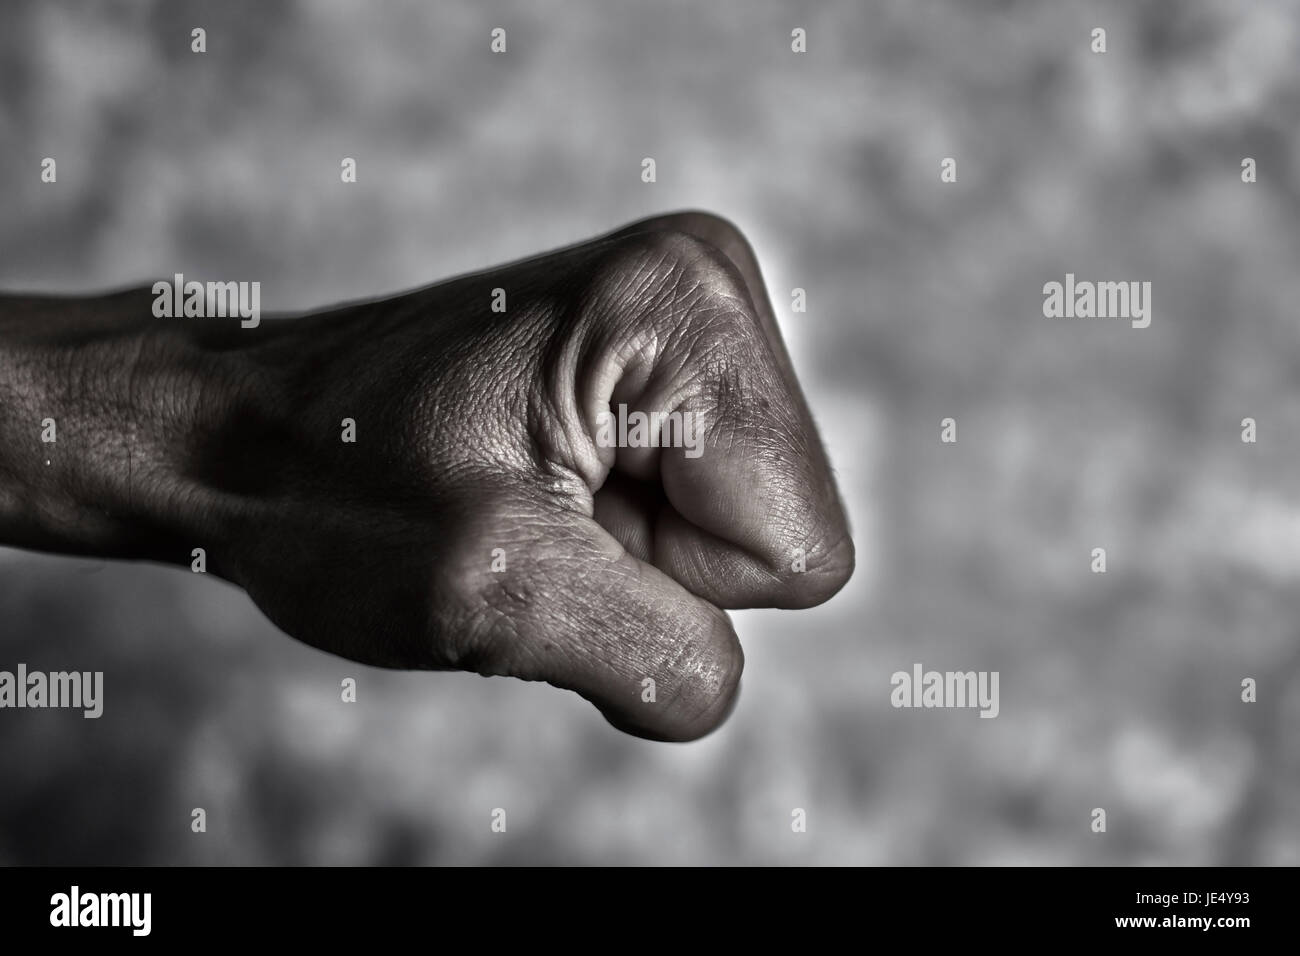 closeup of the fist of a young caucasian man in the air ready to punch or fight, against a graded gray background, - Stock Image